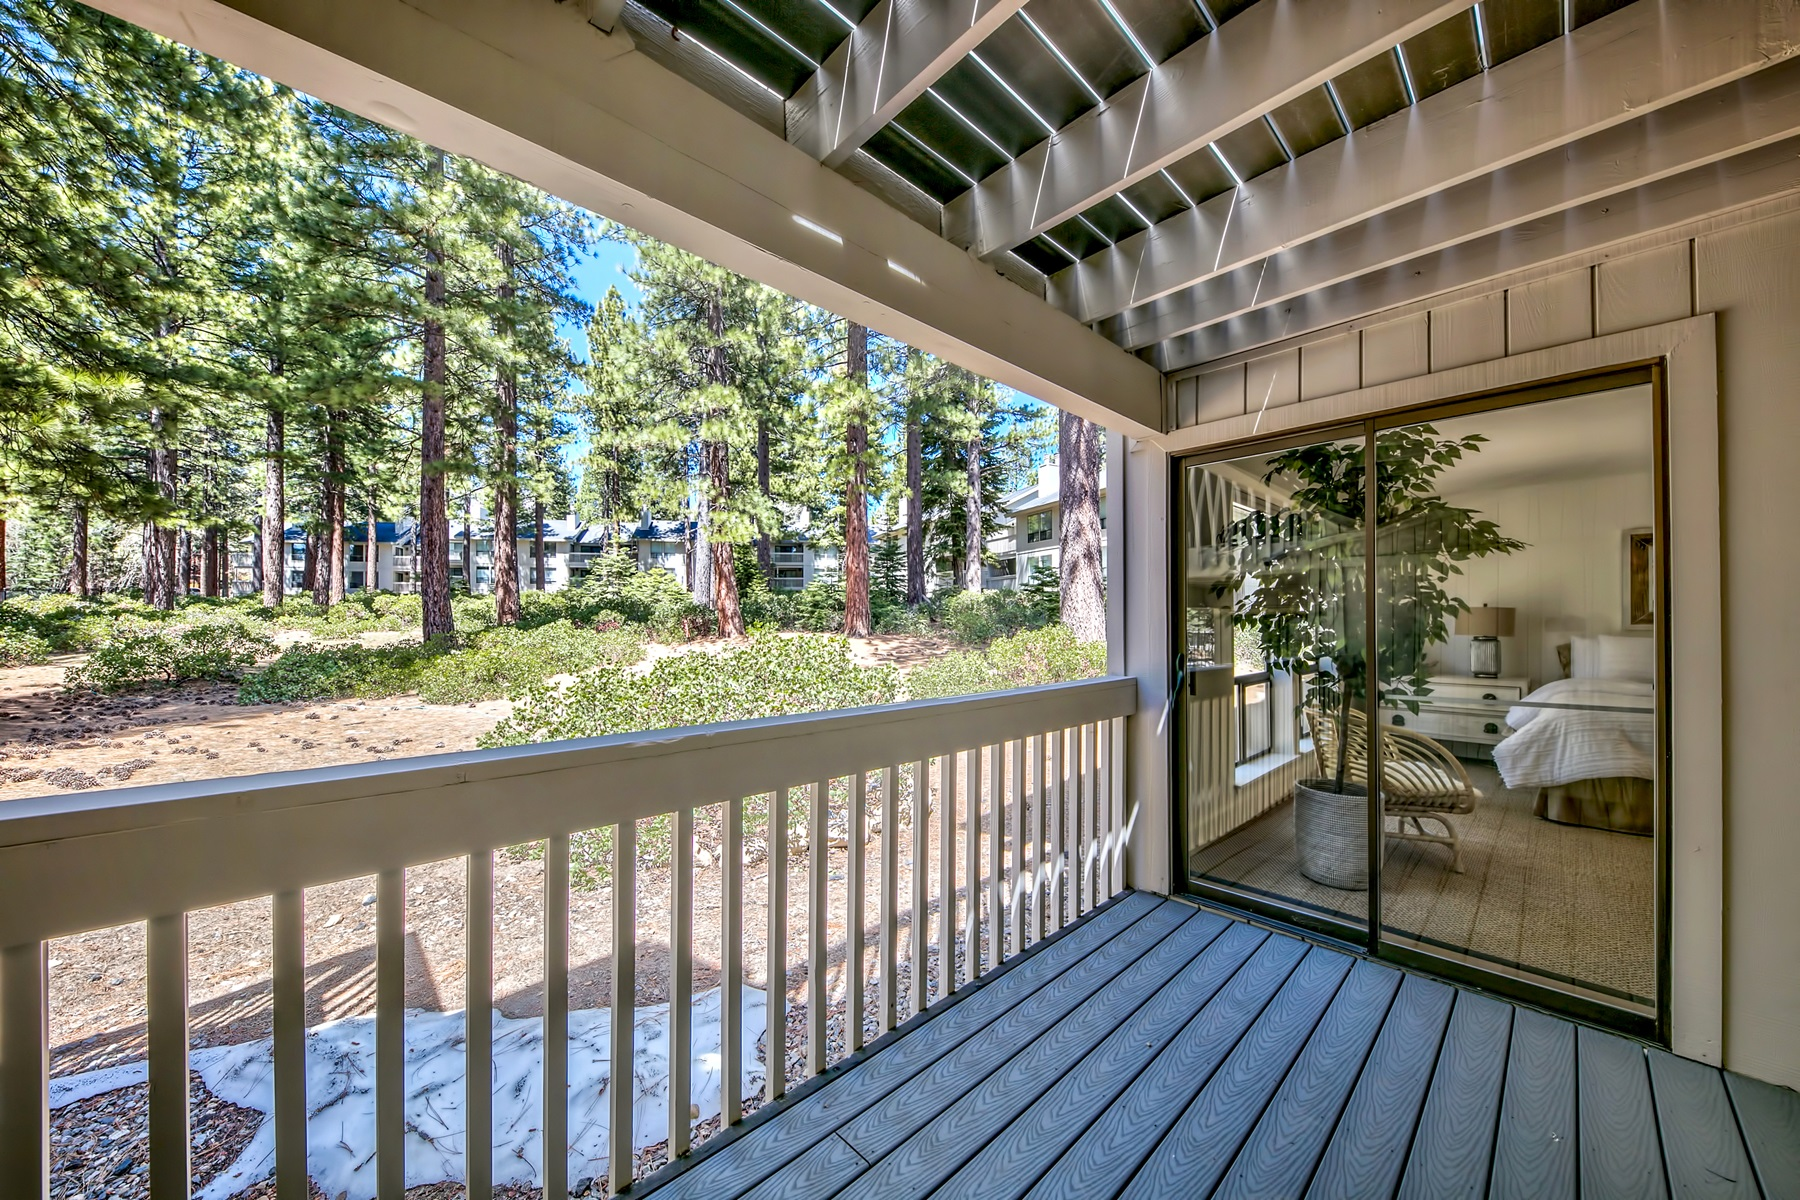 Additional photo for property listing at 171 Village Blvd, Unit #16, Incline Village, NV 89451 171 Village Blvd. Unit #16 Incline Village, Nevada 89451 United States